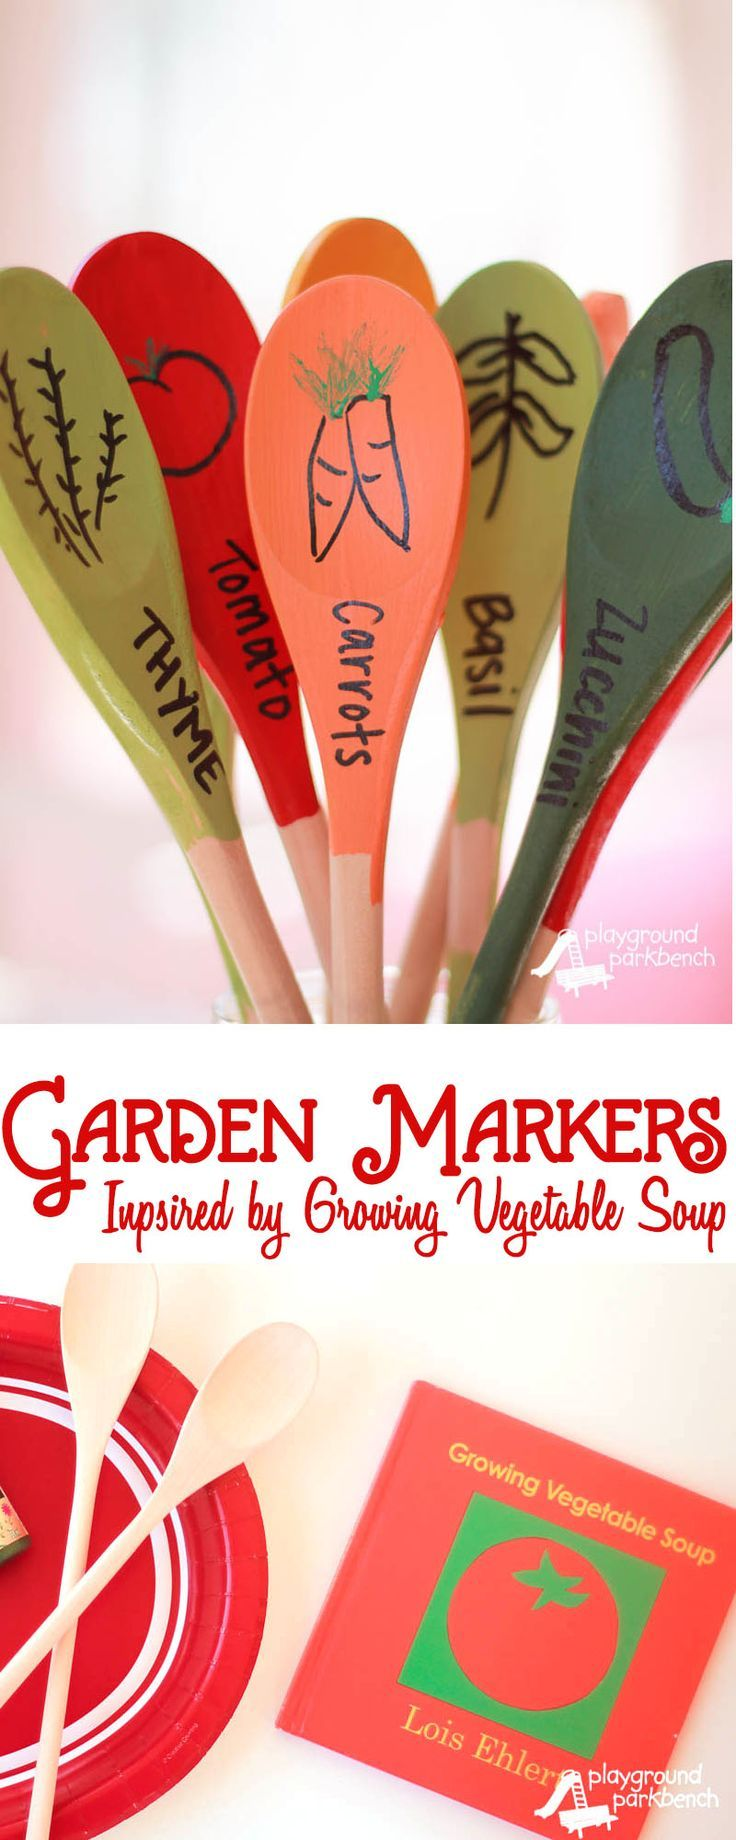 DIY Garden Markers Inspired by Lois Ehlert's Growing Vegetable Soup - Get ready to start your seeds with your kids this Spring by reading Lois Ehlert's Growing Garden boxed set and create your own DIY, permanent Garden Markers! They make for great Mother'